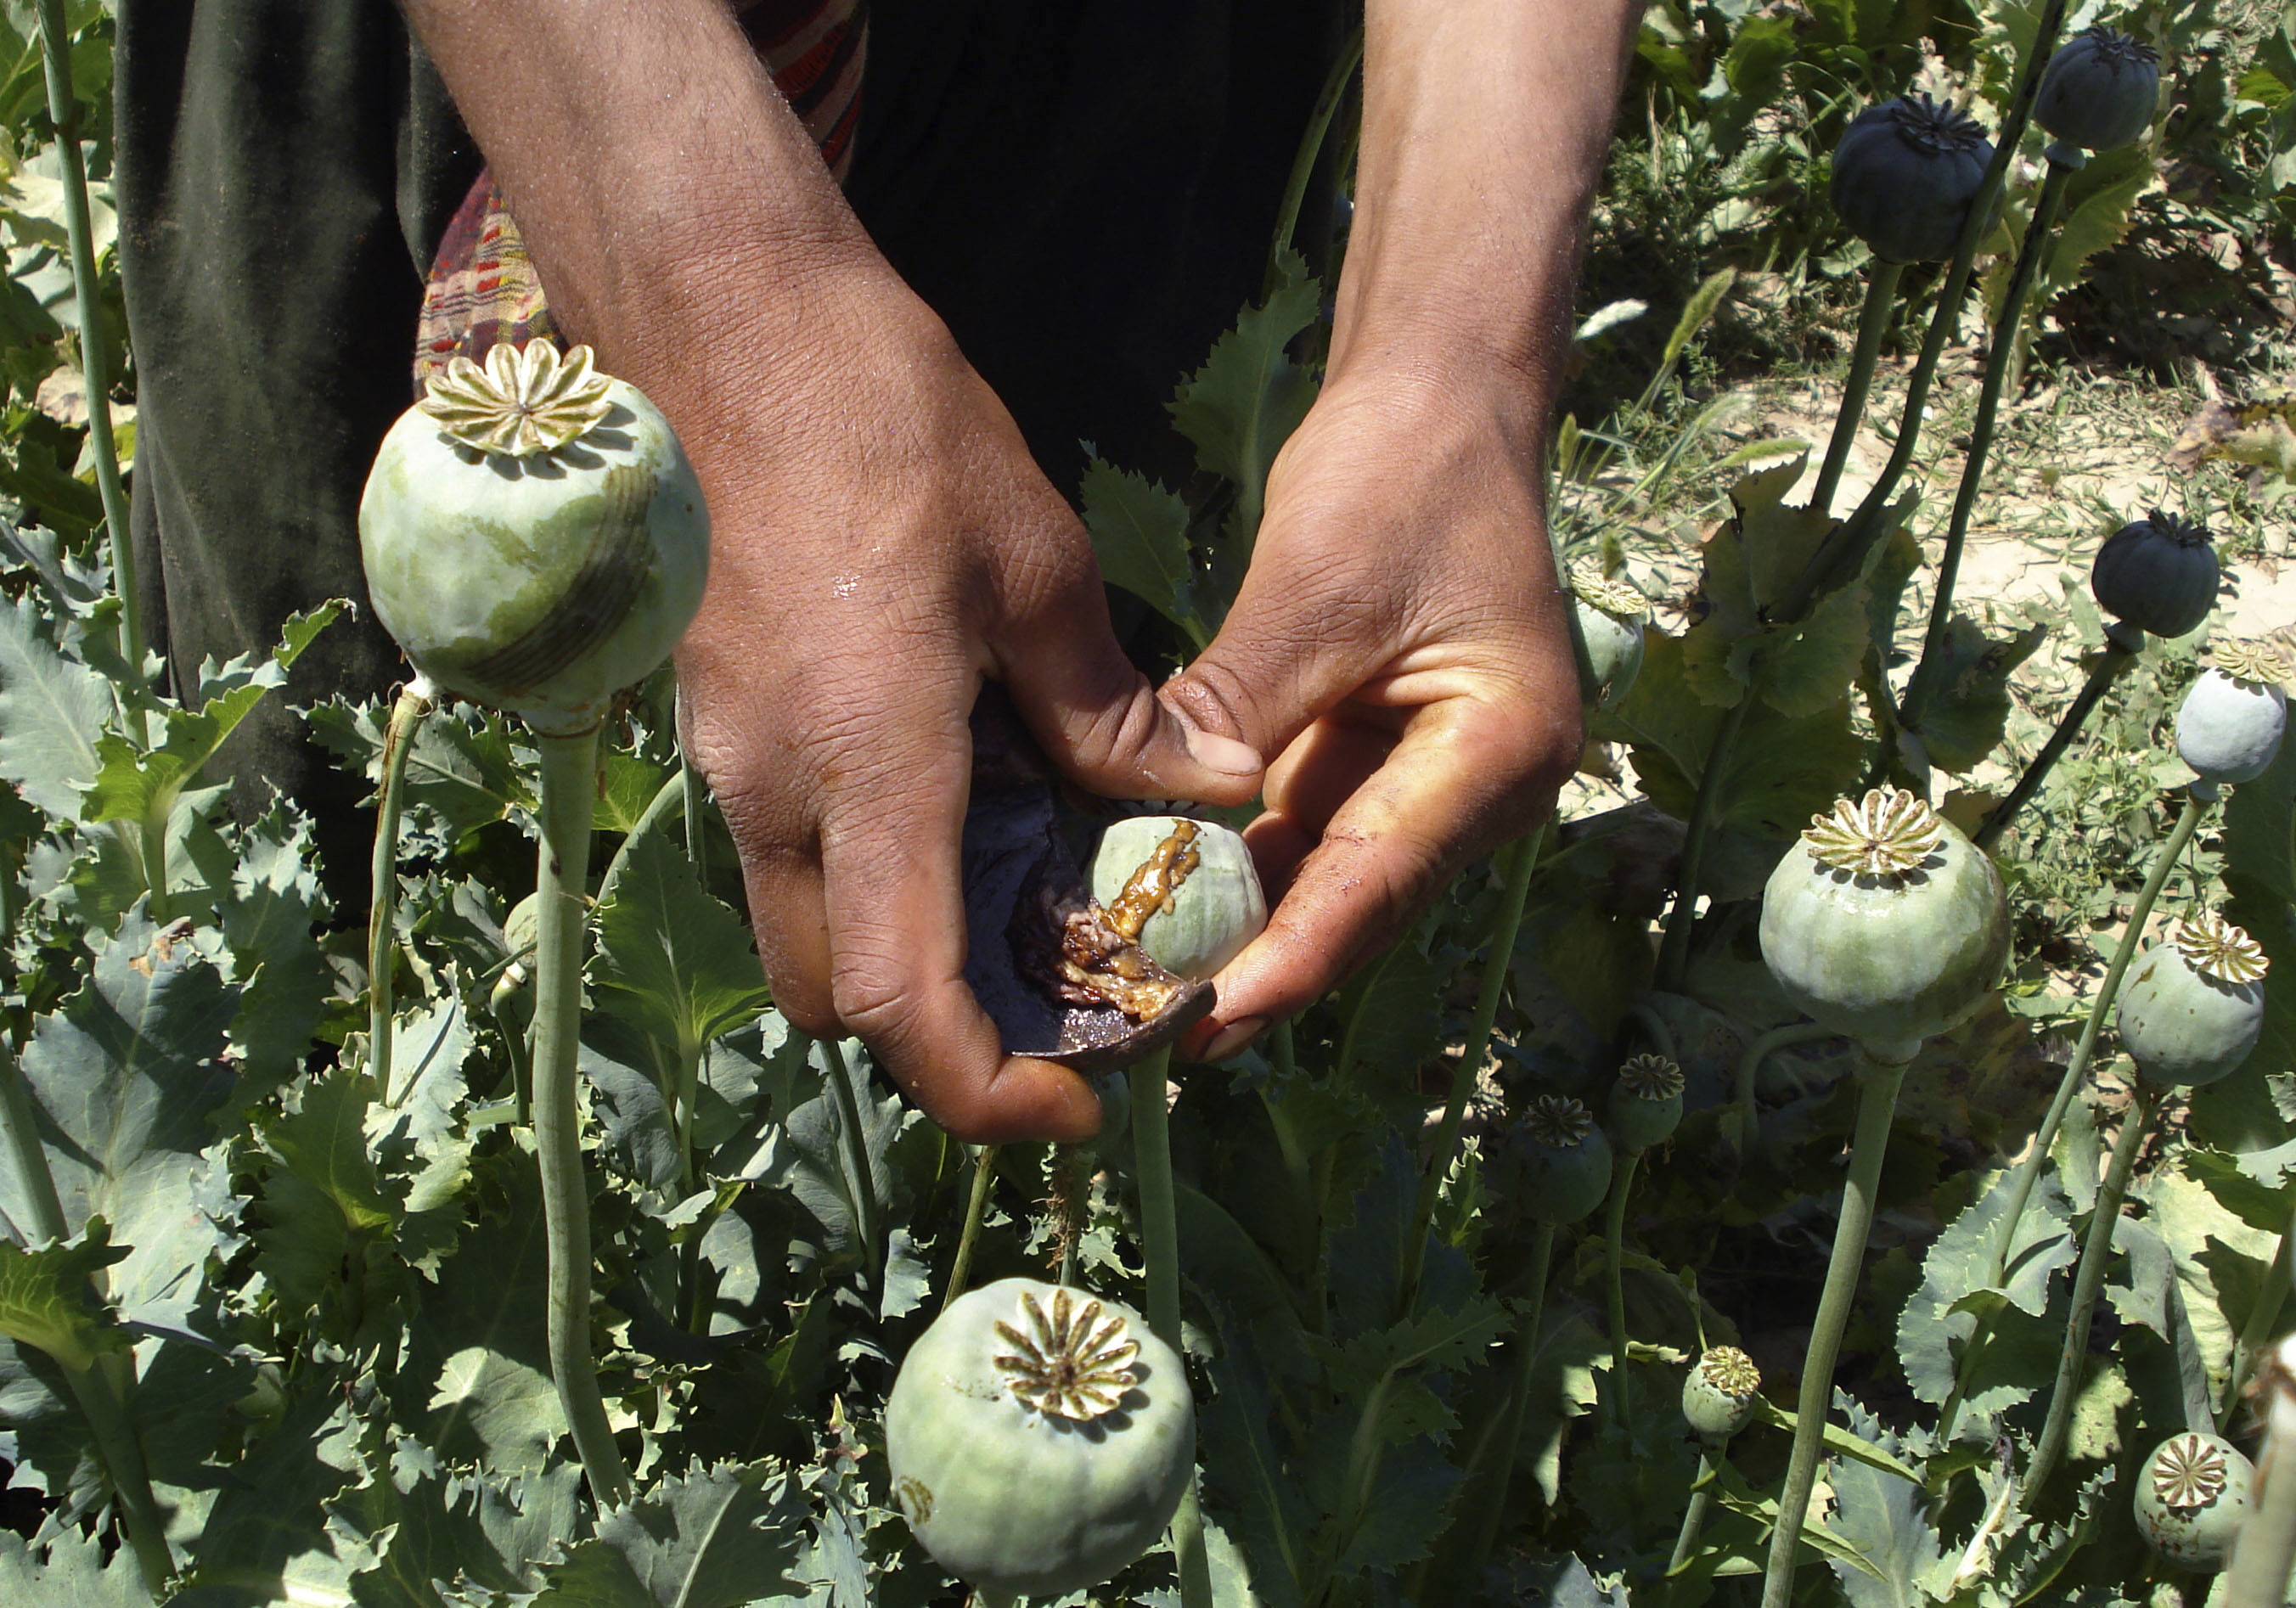 An Afghan man collects resin from poppies in an opium poppy field in Panjwai district of Kandahar province, south of Kabul, Afghanistan on Wednesday, May 21, 2008. Afghanistan supplies some 93 percent of the world's opium used to make heroin (AP Photo)